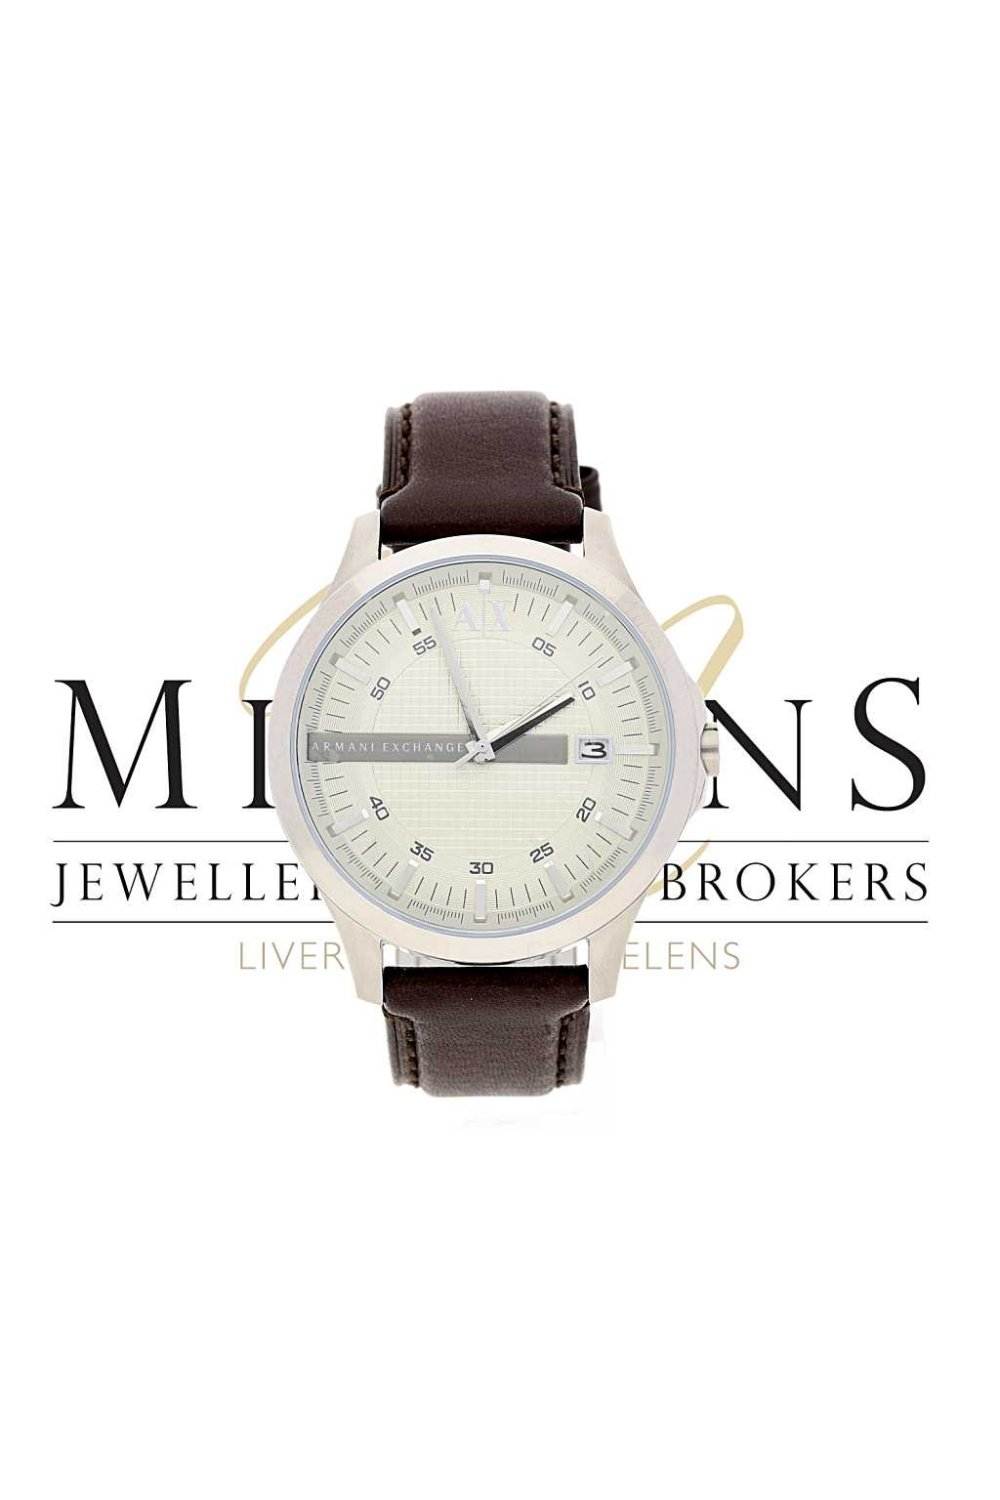 91ea2 9d342 mens armani watches silver nzwatches huge selection of ... a1a2bfedef2b